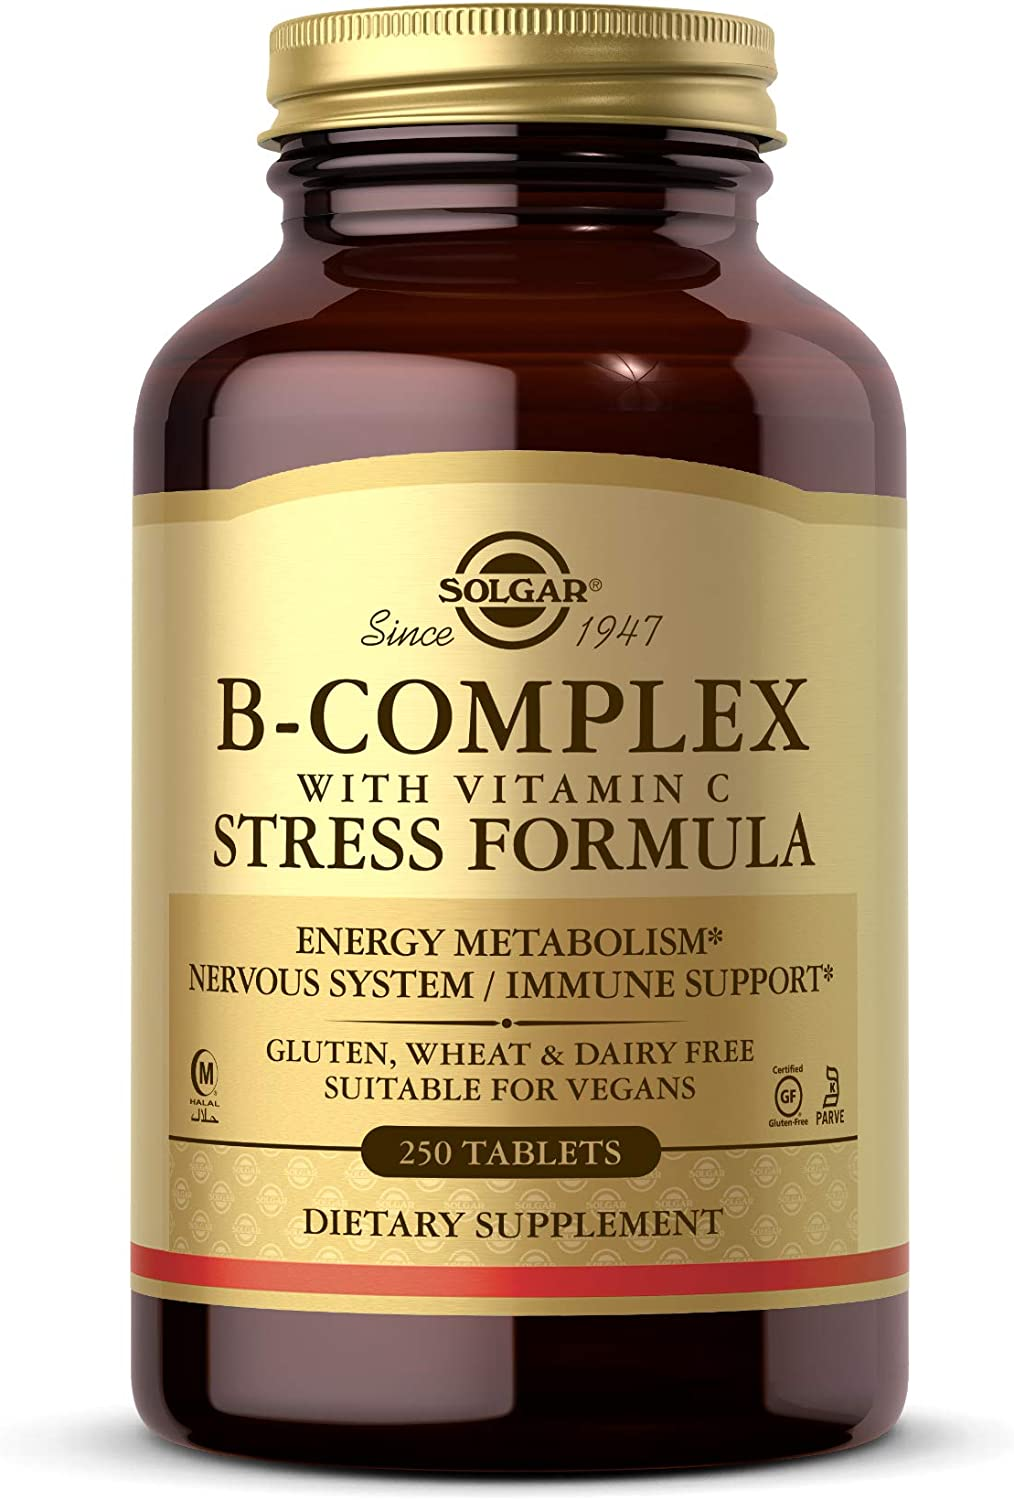 Solgar B-Complex with Vitamin C Stress Formula, 250 Tablets - Energy Metabolism, Nervous System & Immune Support - Non-GMO, Vegan, Gluten Free, Dairy Free, Kosher, Halal - 125 Servings: Health & Personal Care